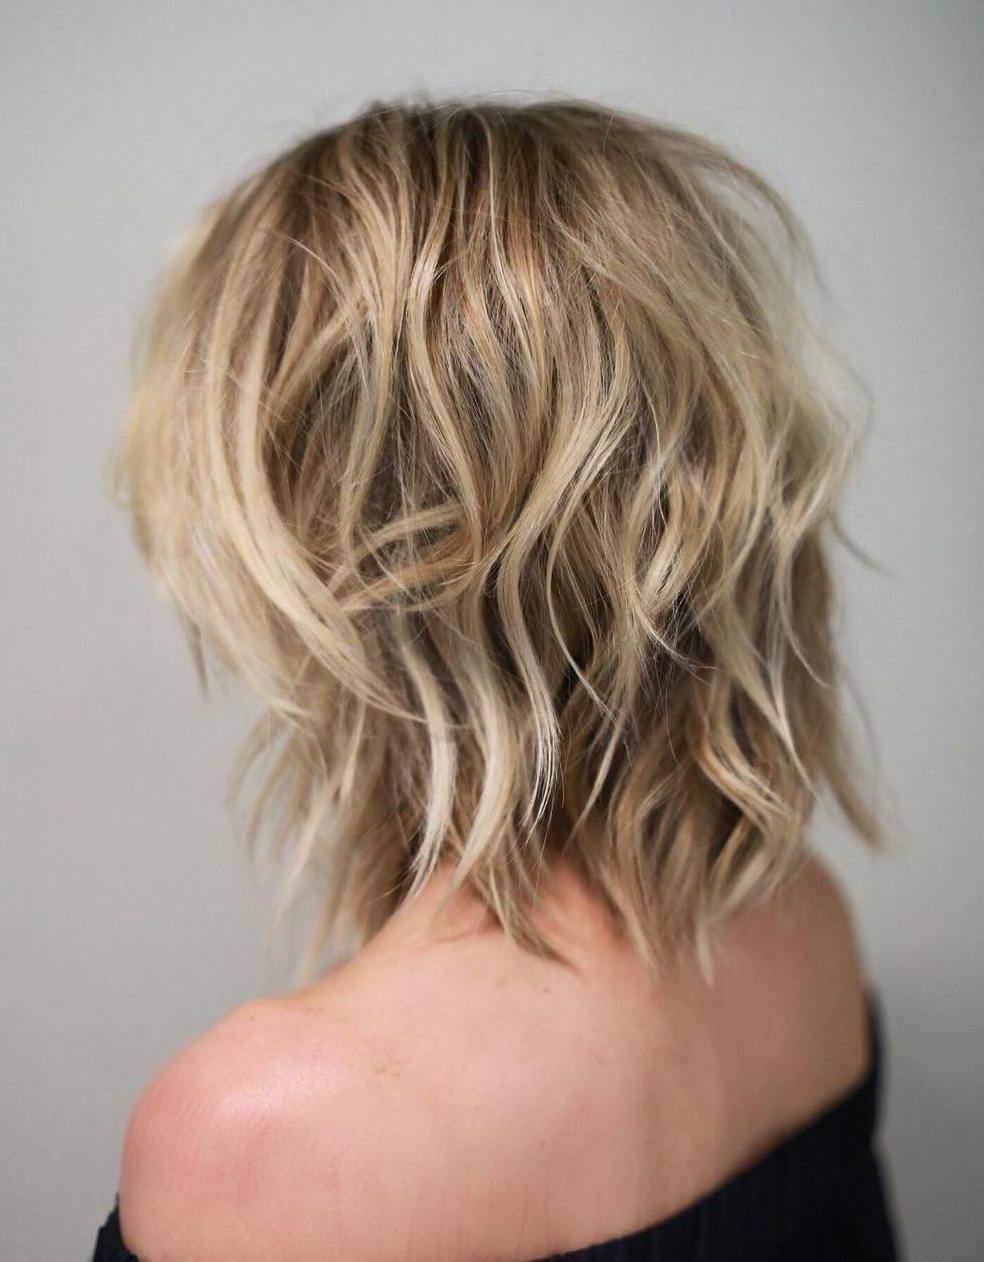 Shag Haircuts And Hairstyles In 2019 — Therighthairstyles For Most Up To Date Long Texture Boosting Layers Hairstyles (Gallery 19 of 20)